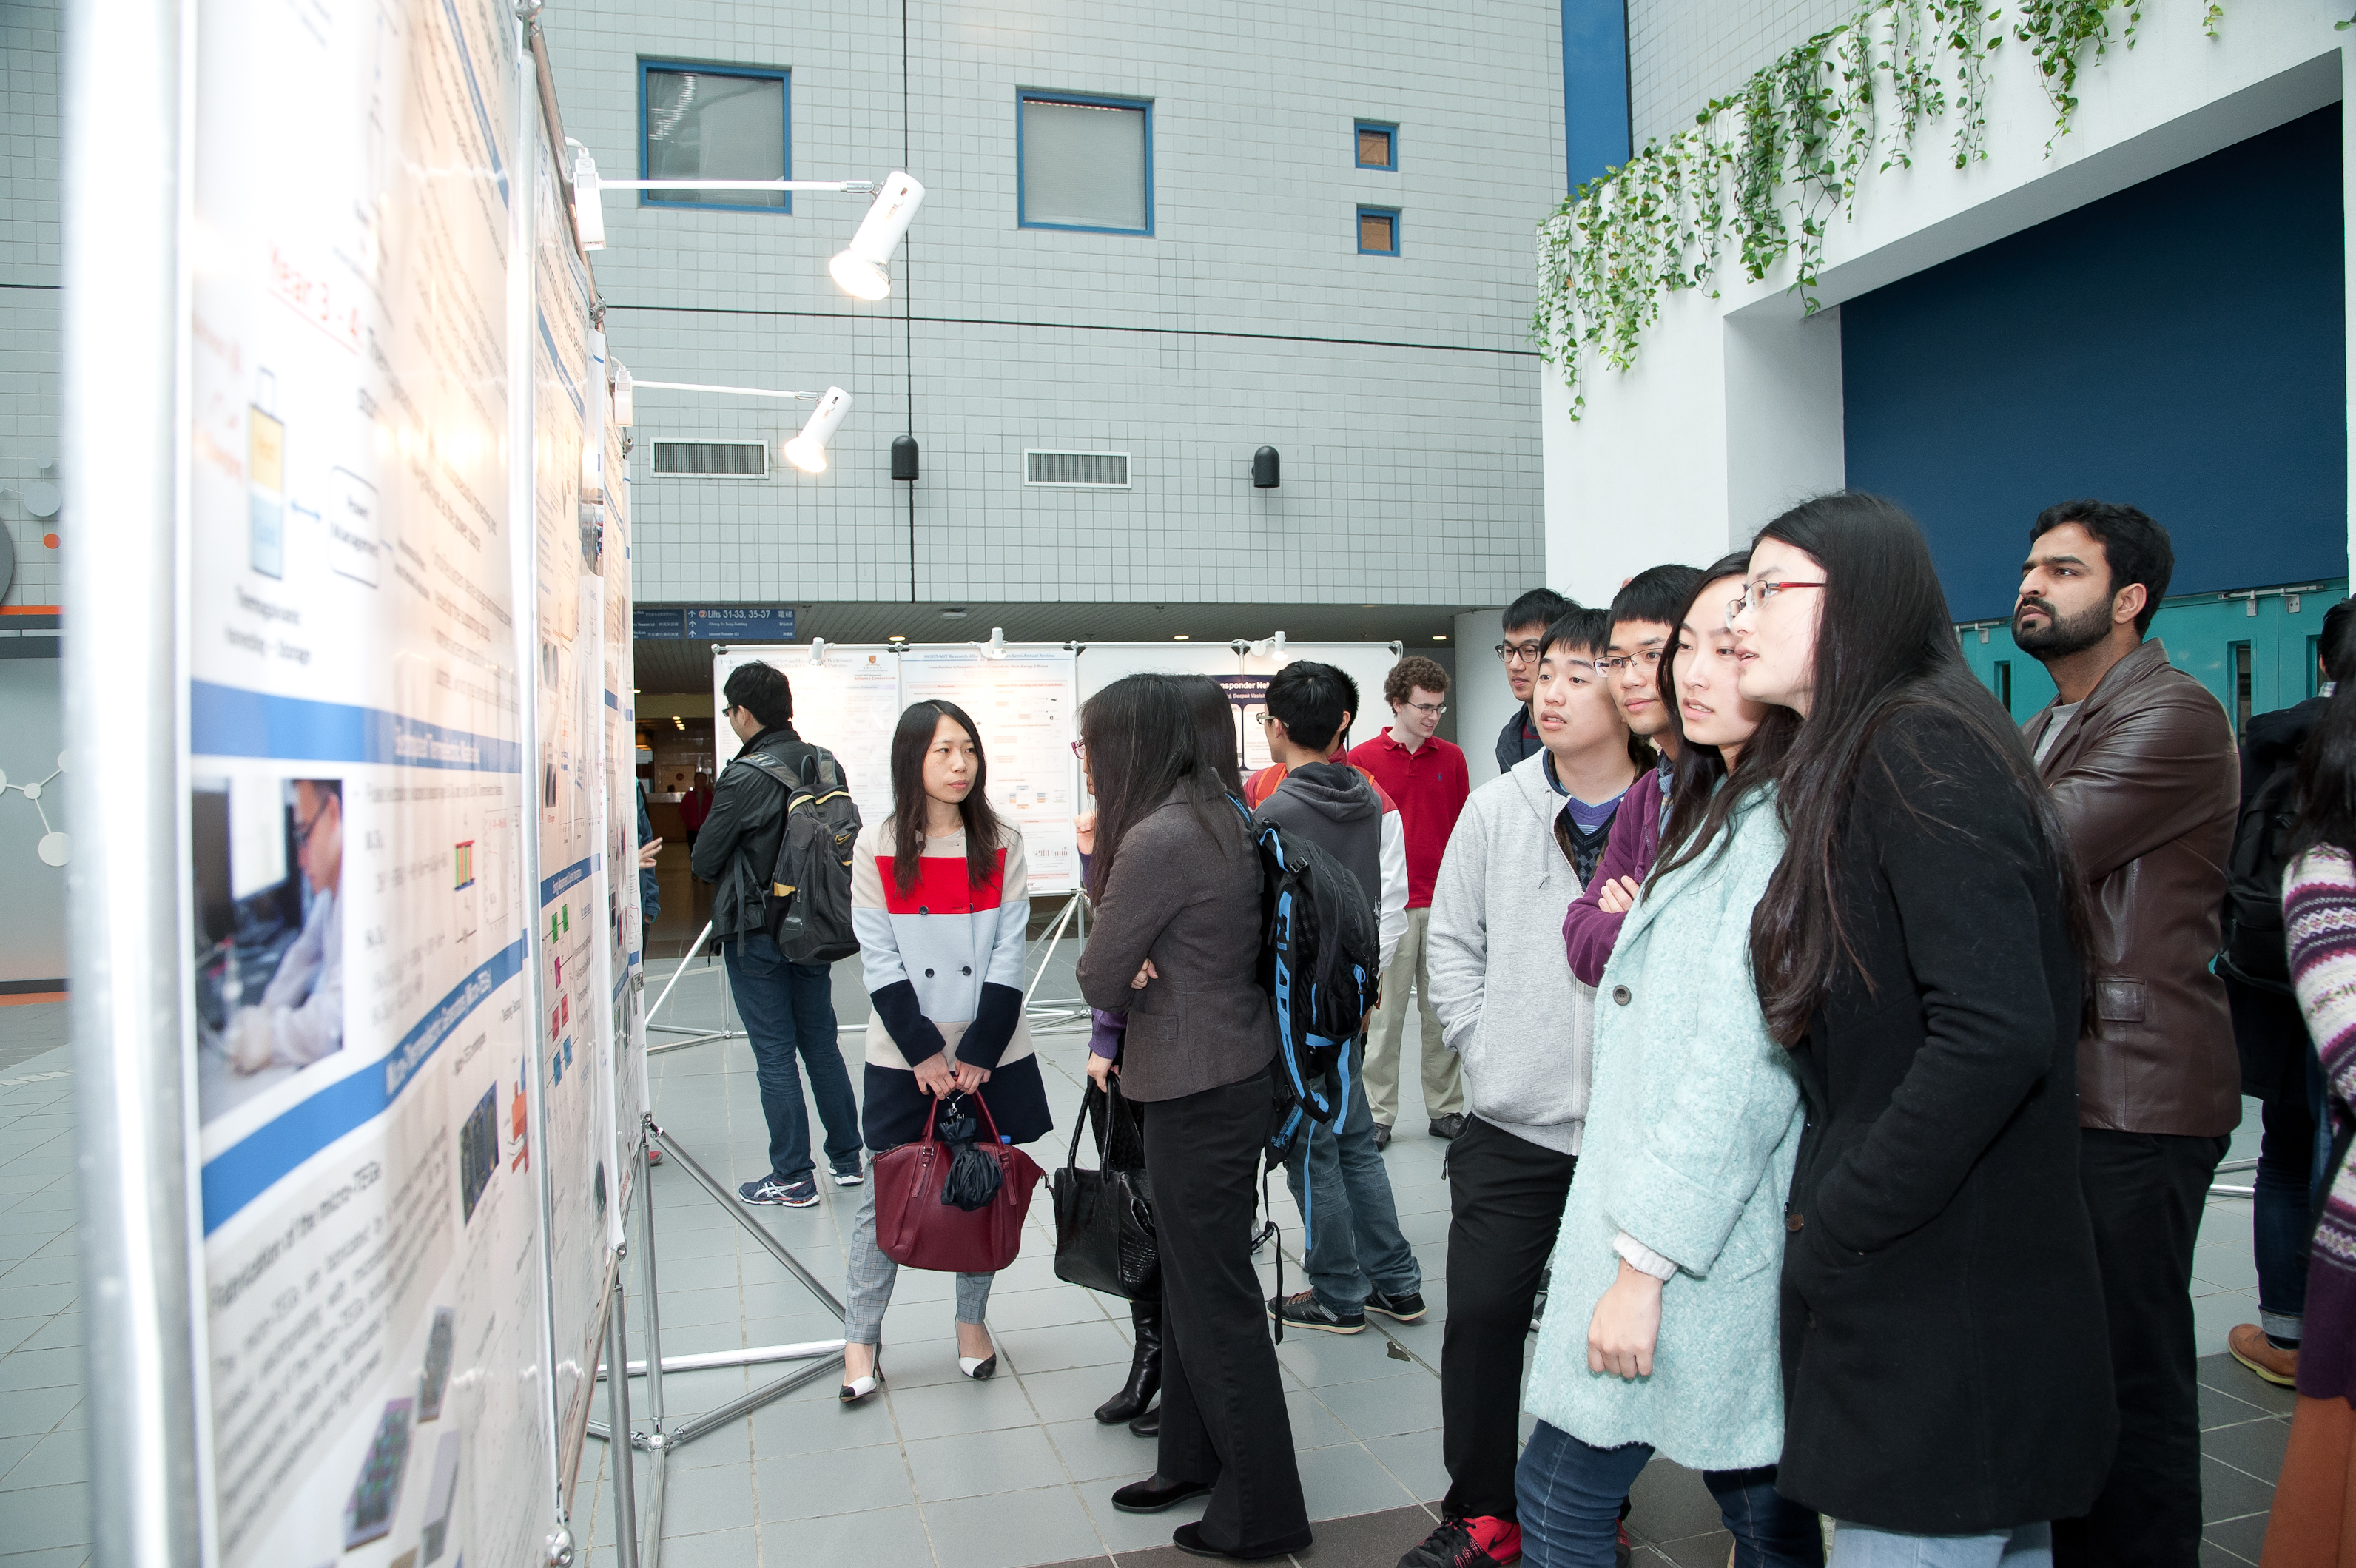 HKU_Res_All_Con_P14567_01_002